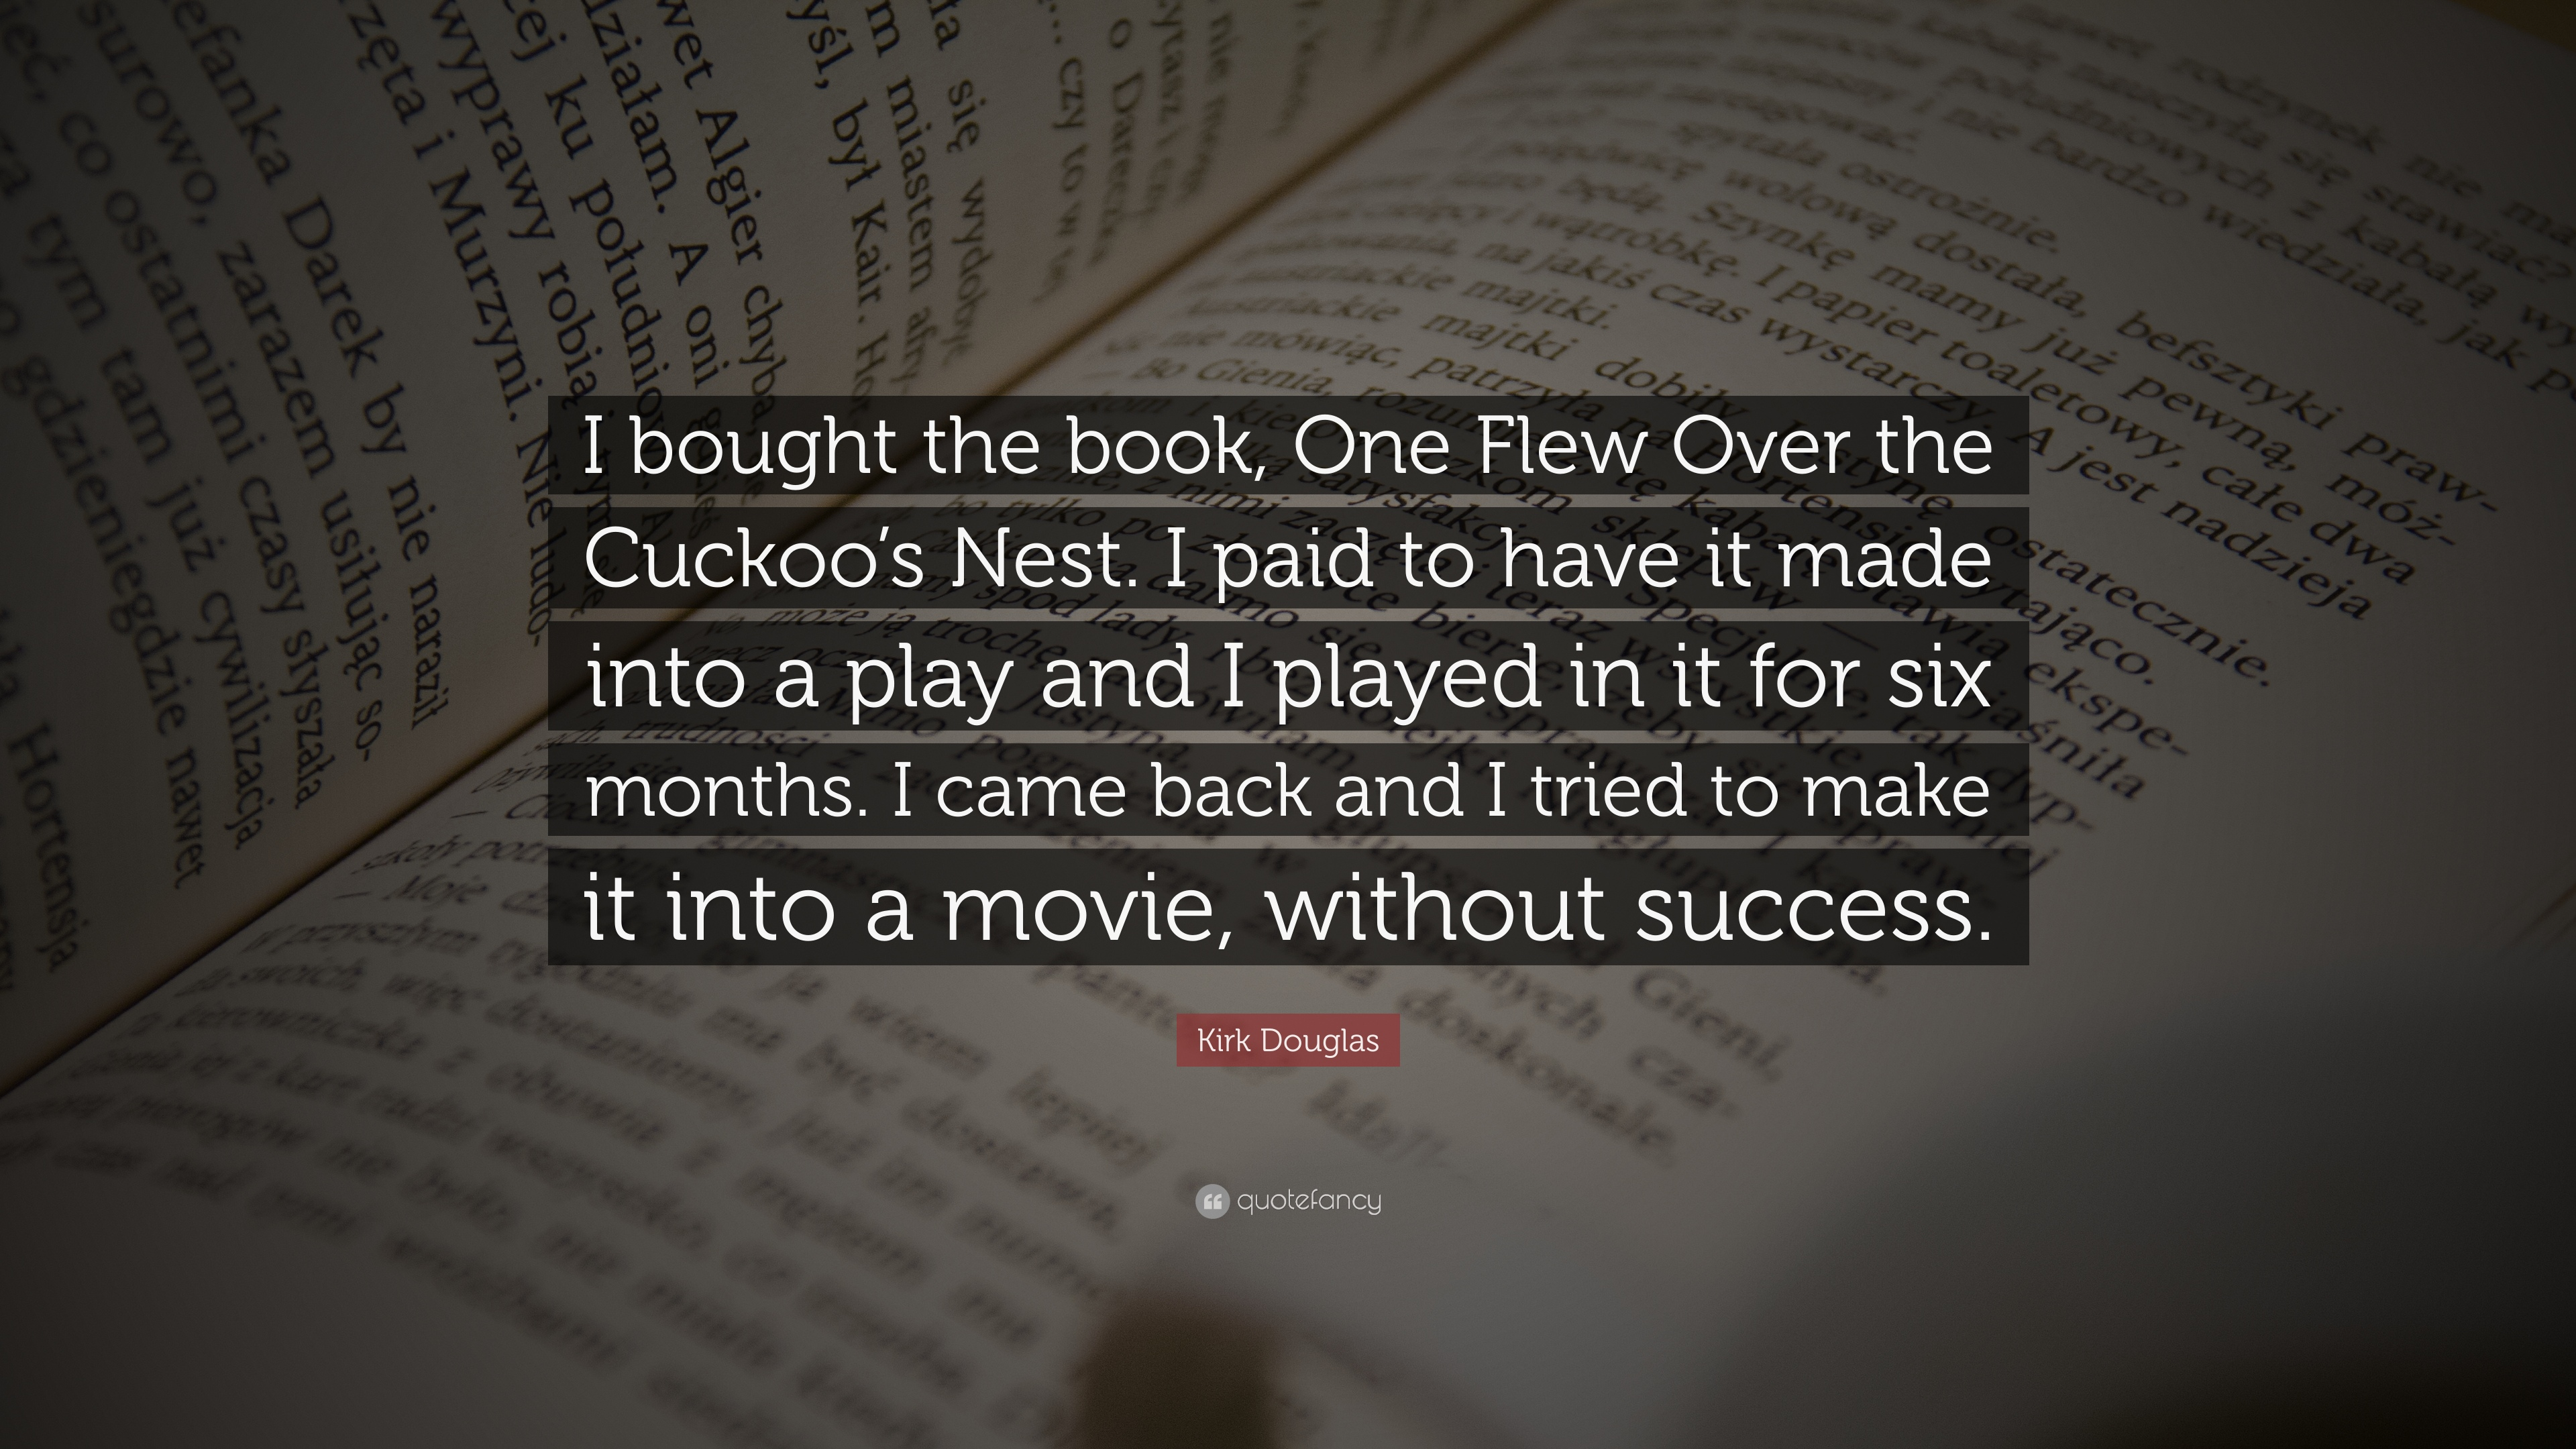 One Flew Over The Cuckoo's Nest Quotes | Kirk Douglas Quote I Bought The Book One Flew Over The Cuckoo S